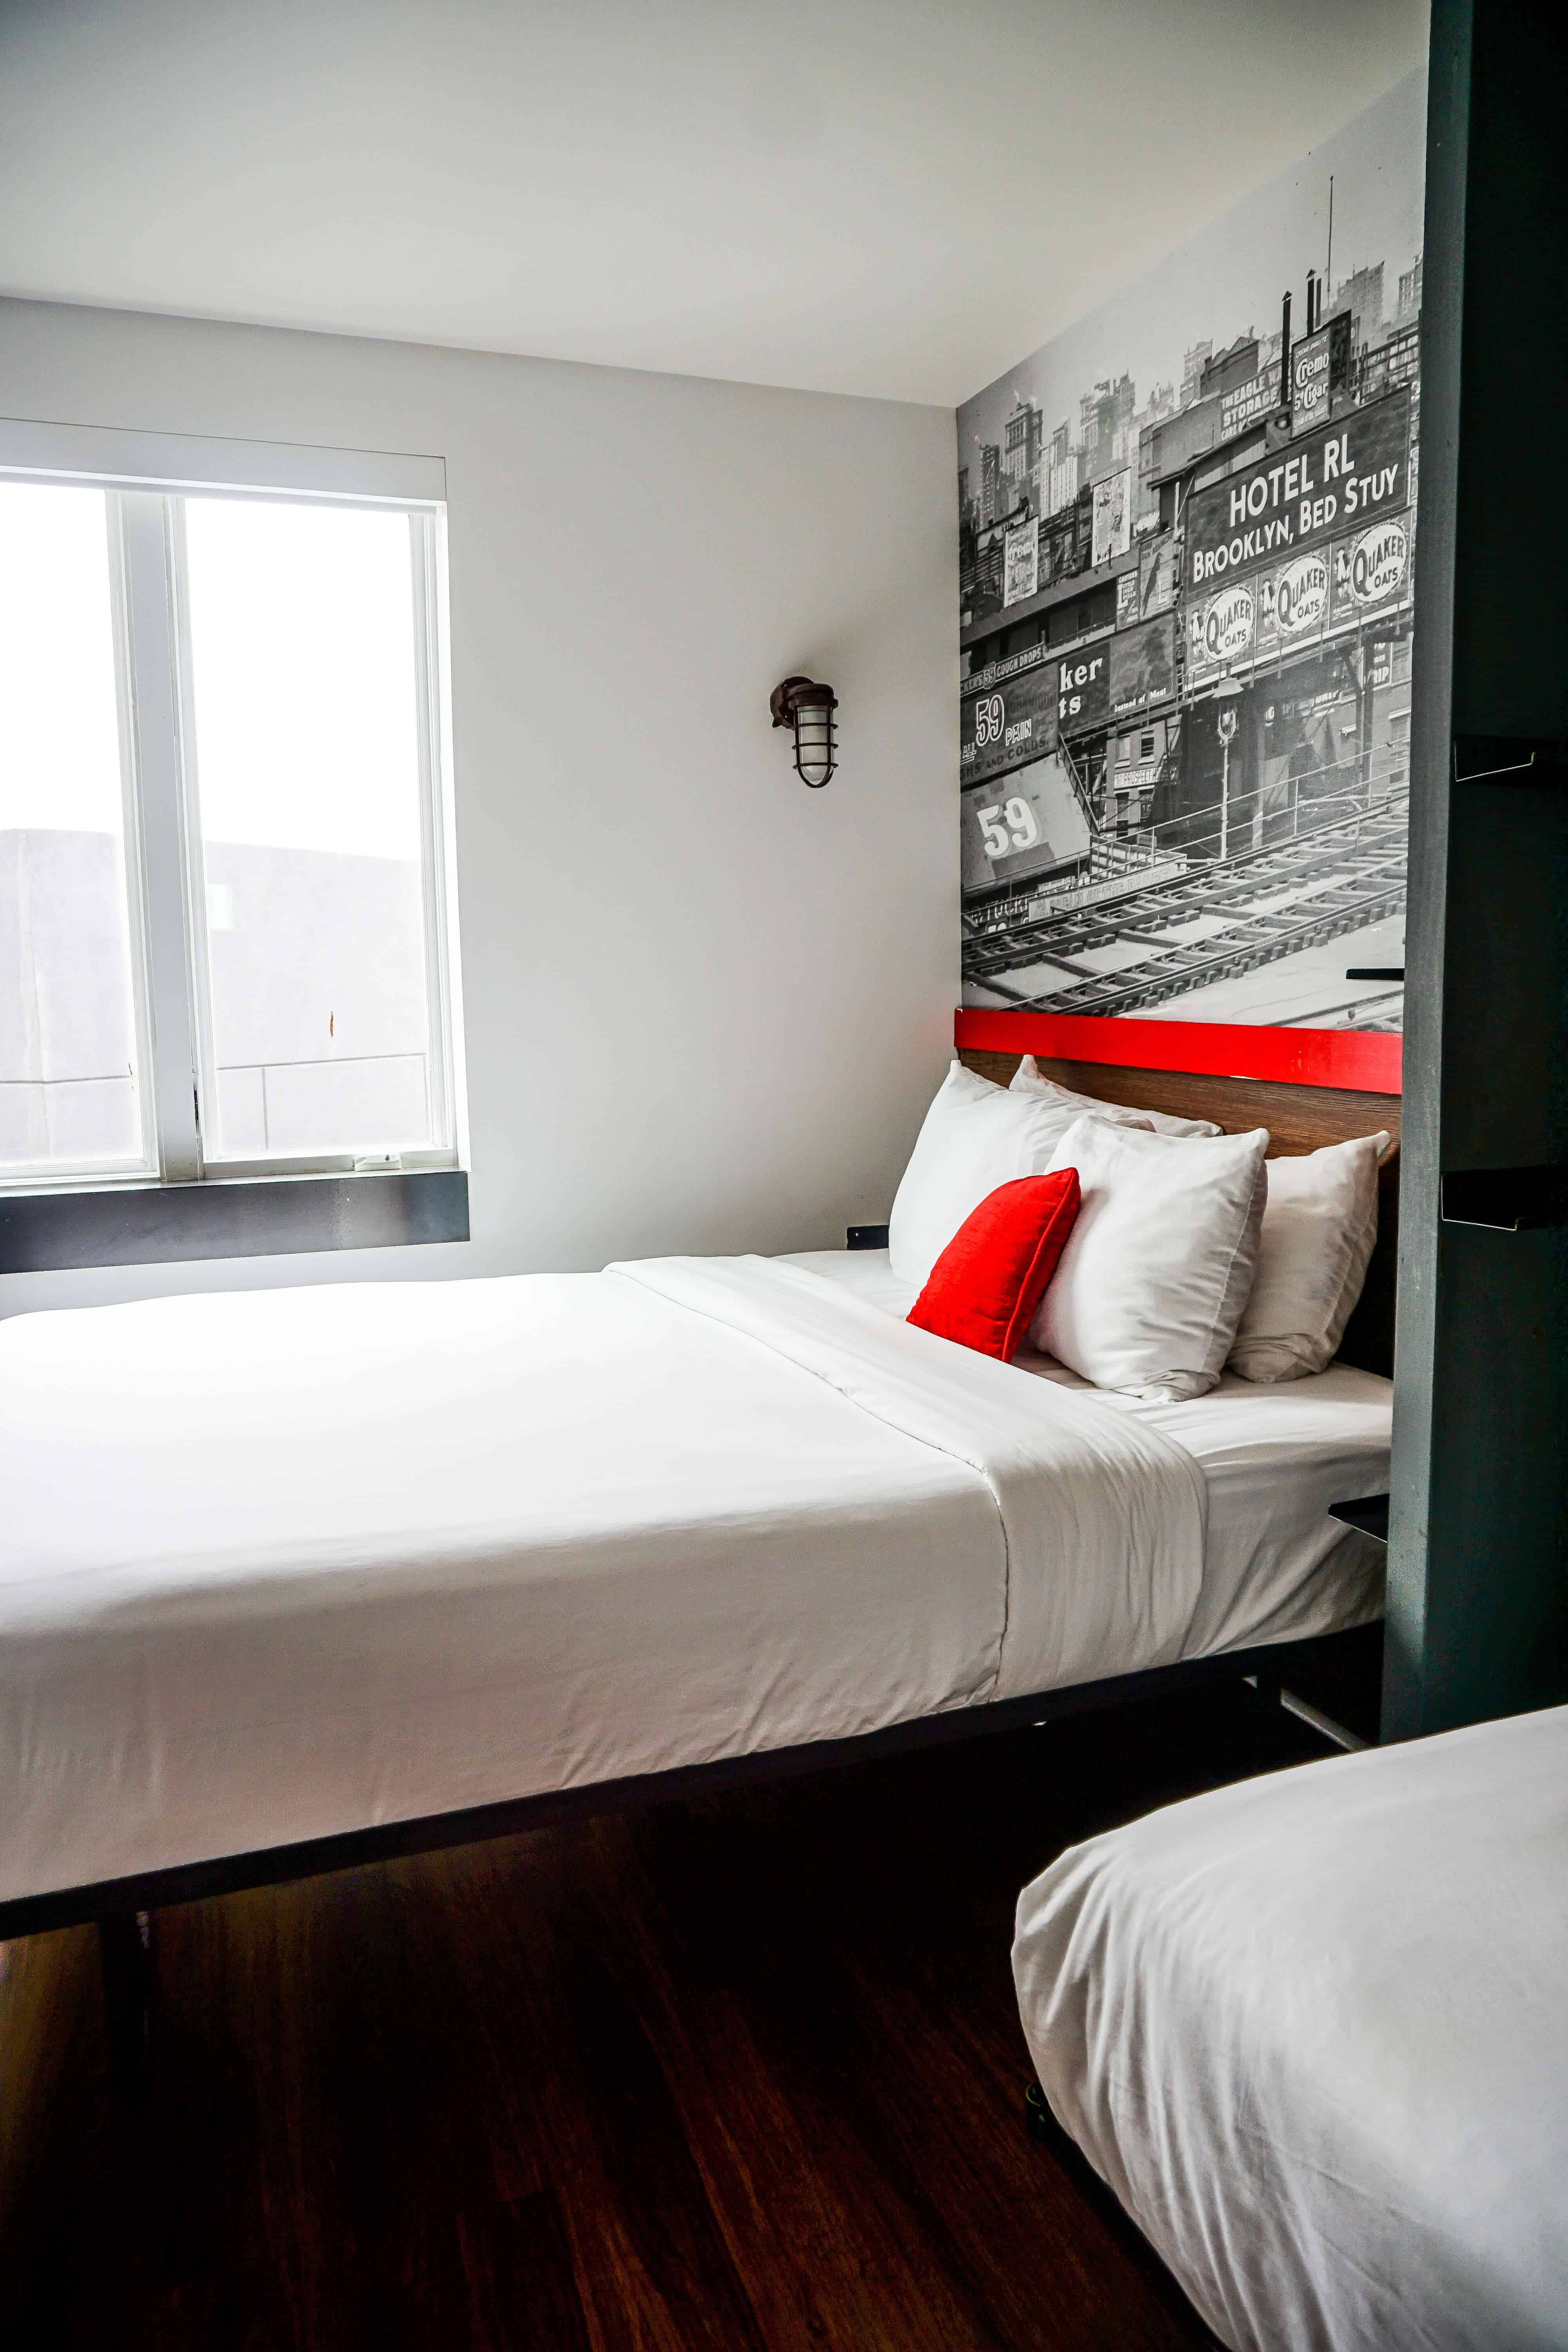 Looking for the best boutique hotel in Brooklyn, New York? Take a peek inside Hotel RL Brooklyn & find out why you should book this community-focused hotel! #NYC #NYChotels #hotels #travel #USAtravel #brooklyn #bushwick